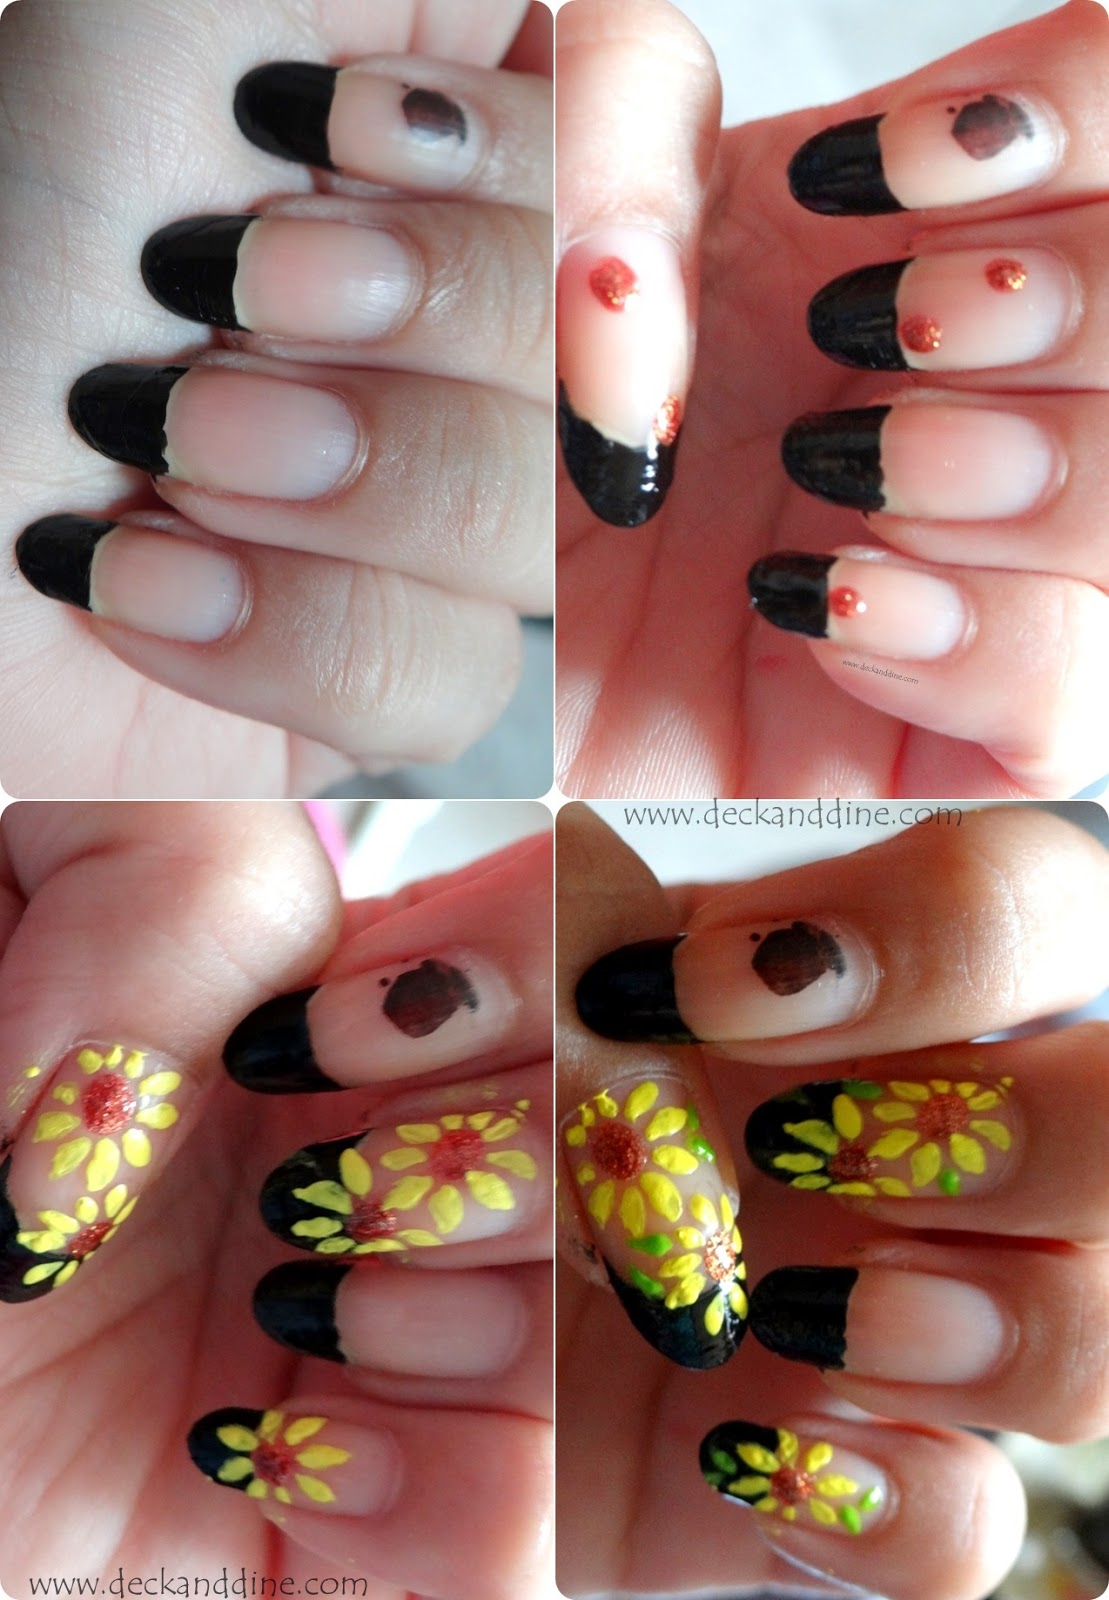 Summer Sunflower Nail Art Step-by-Step Tutorial - Deck and Dine